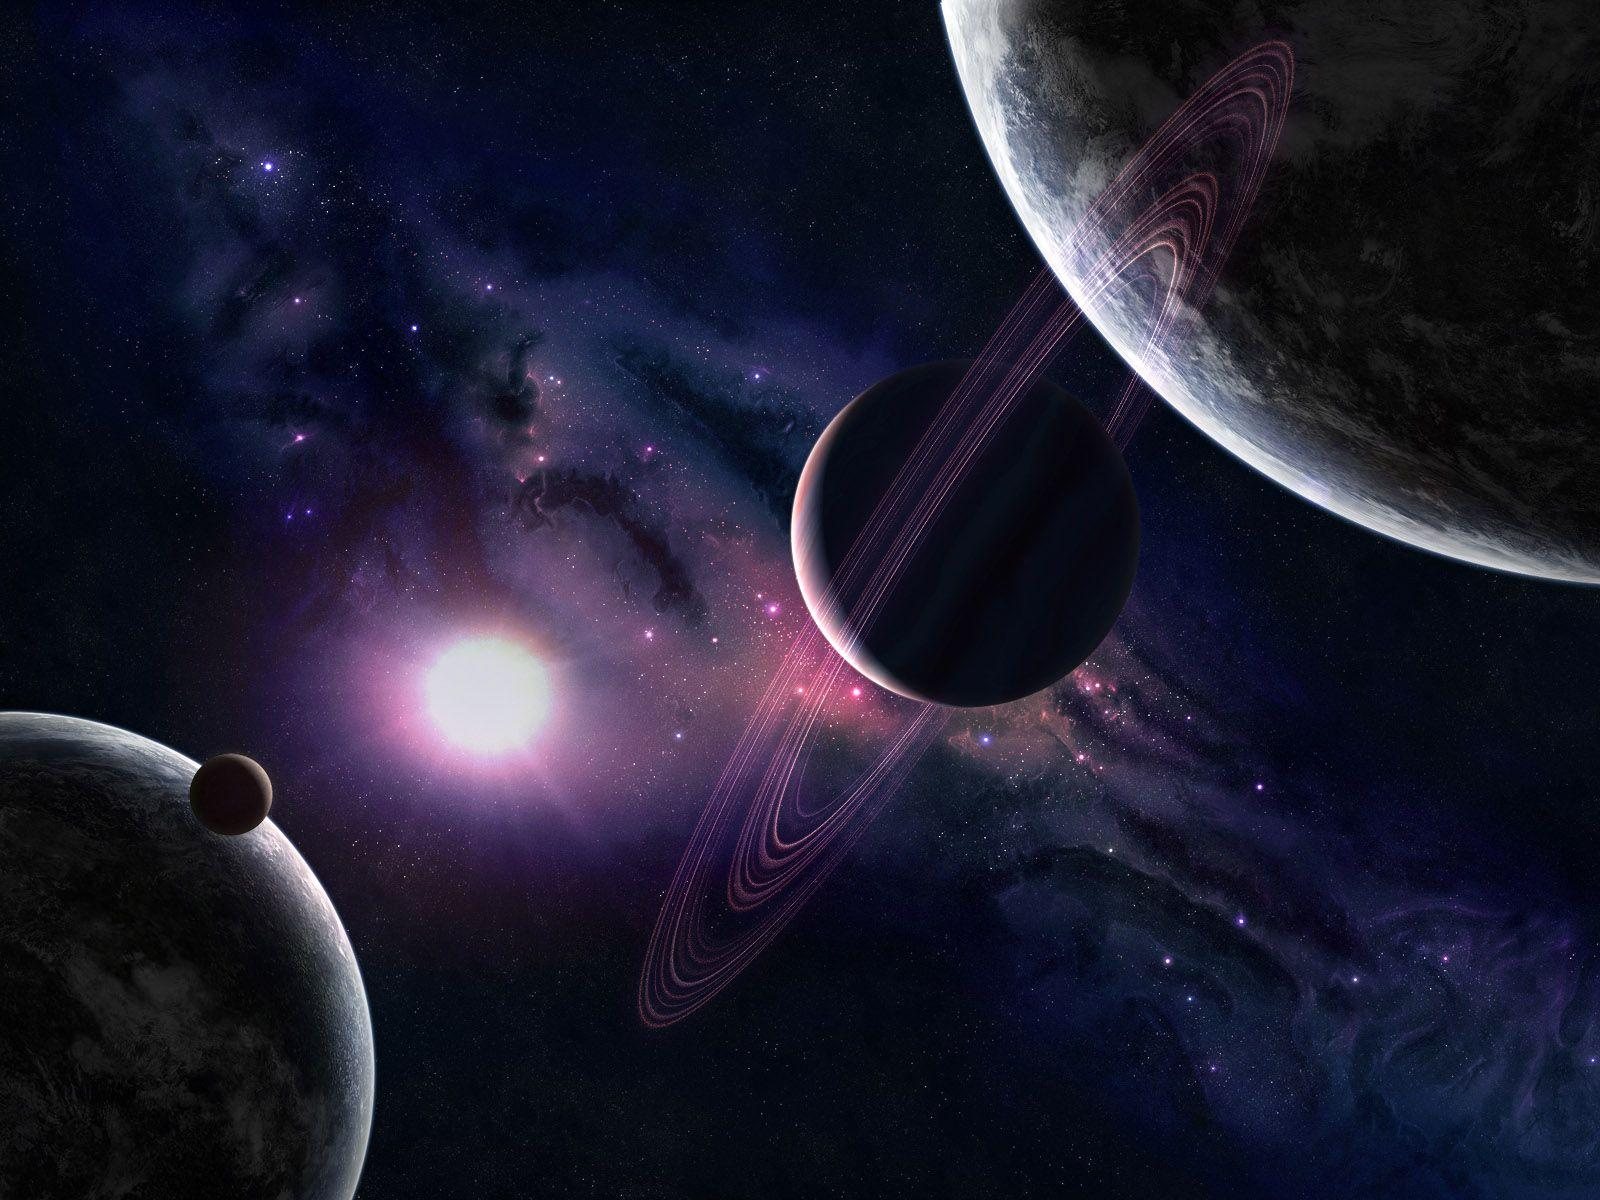 Universe Hd Wallpapers For Mobile ✓ Many HD e